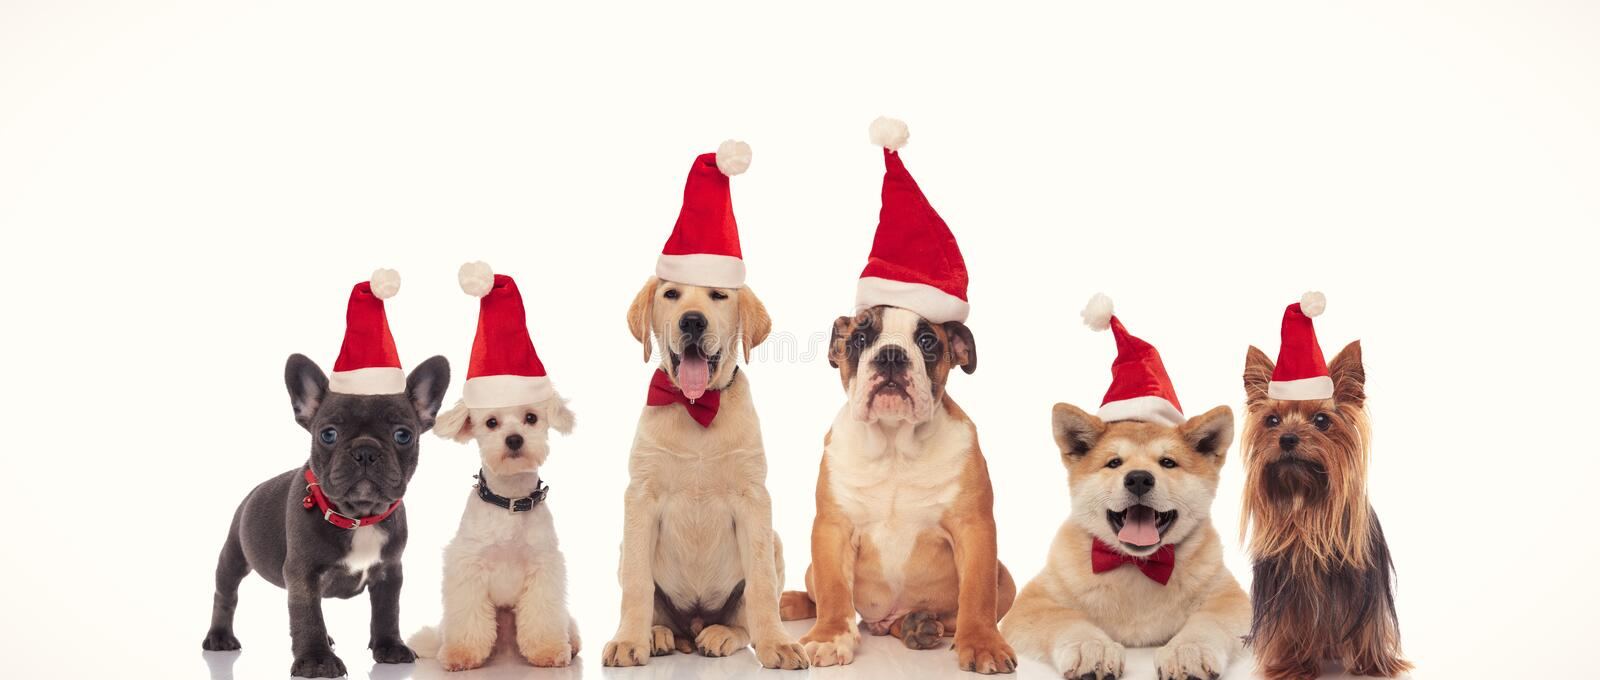 6 happy dogs celebrating christmas together. On white background royalty free stock photo